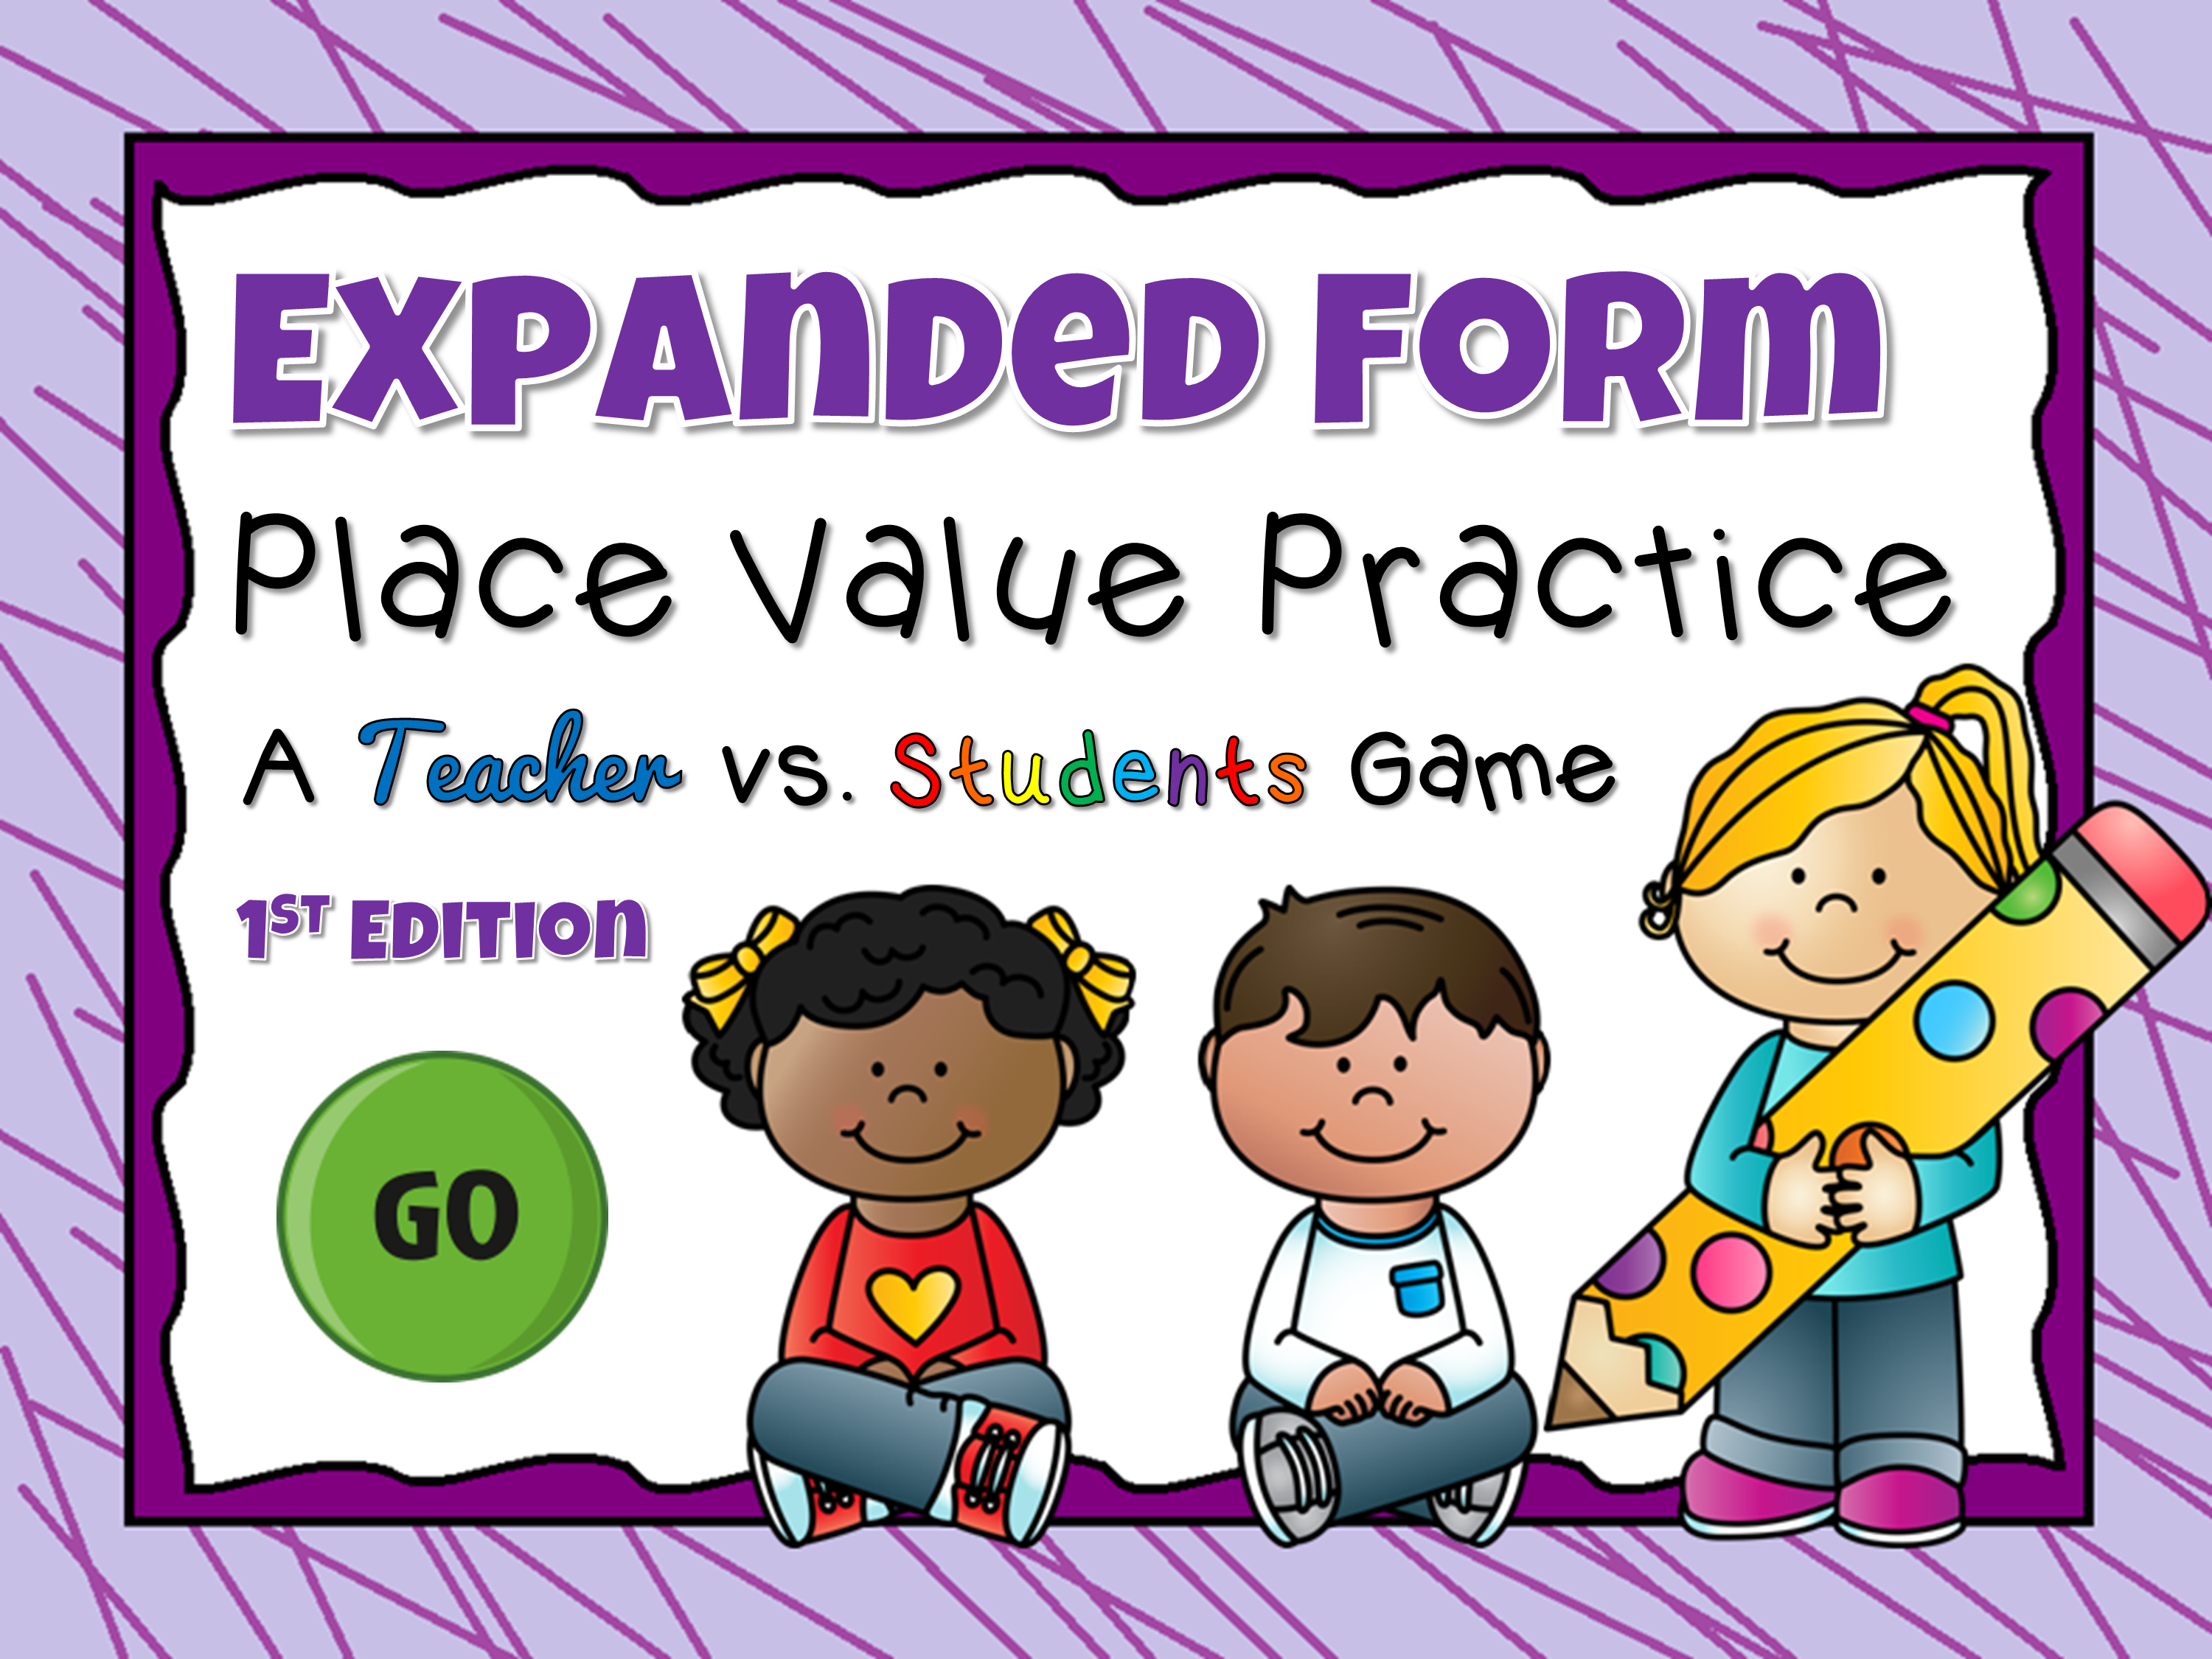 Expanded Form Practice Teacher vs Student Game